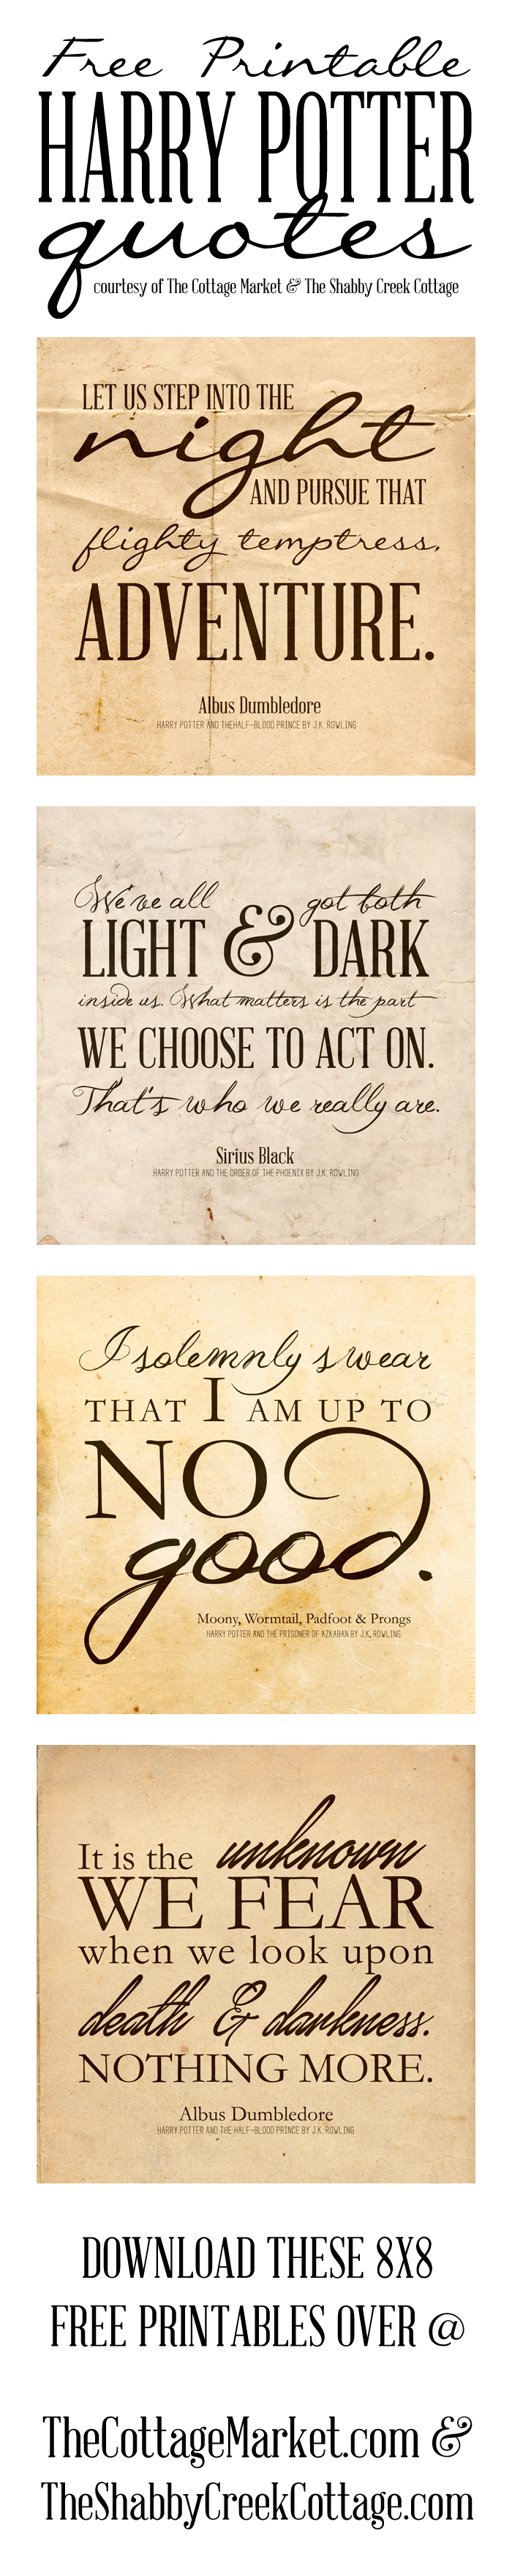 Free Harry Potter Quotes Printables - Free Harry Potter Printable Signs